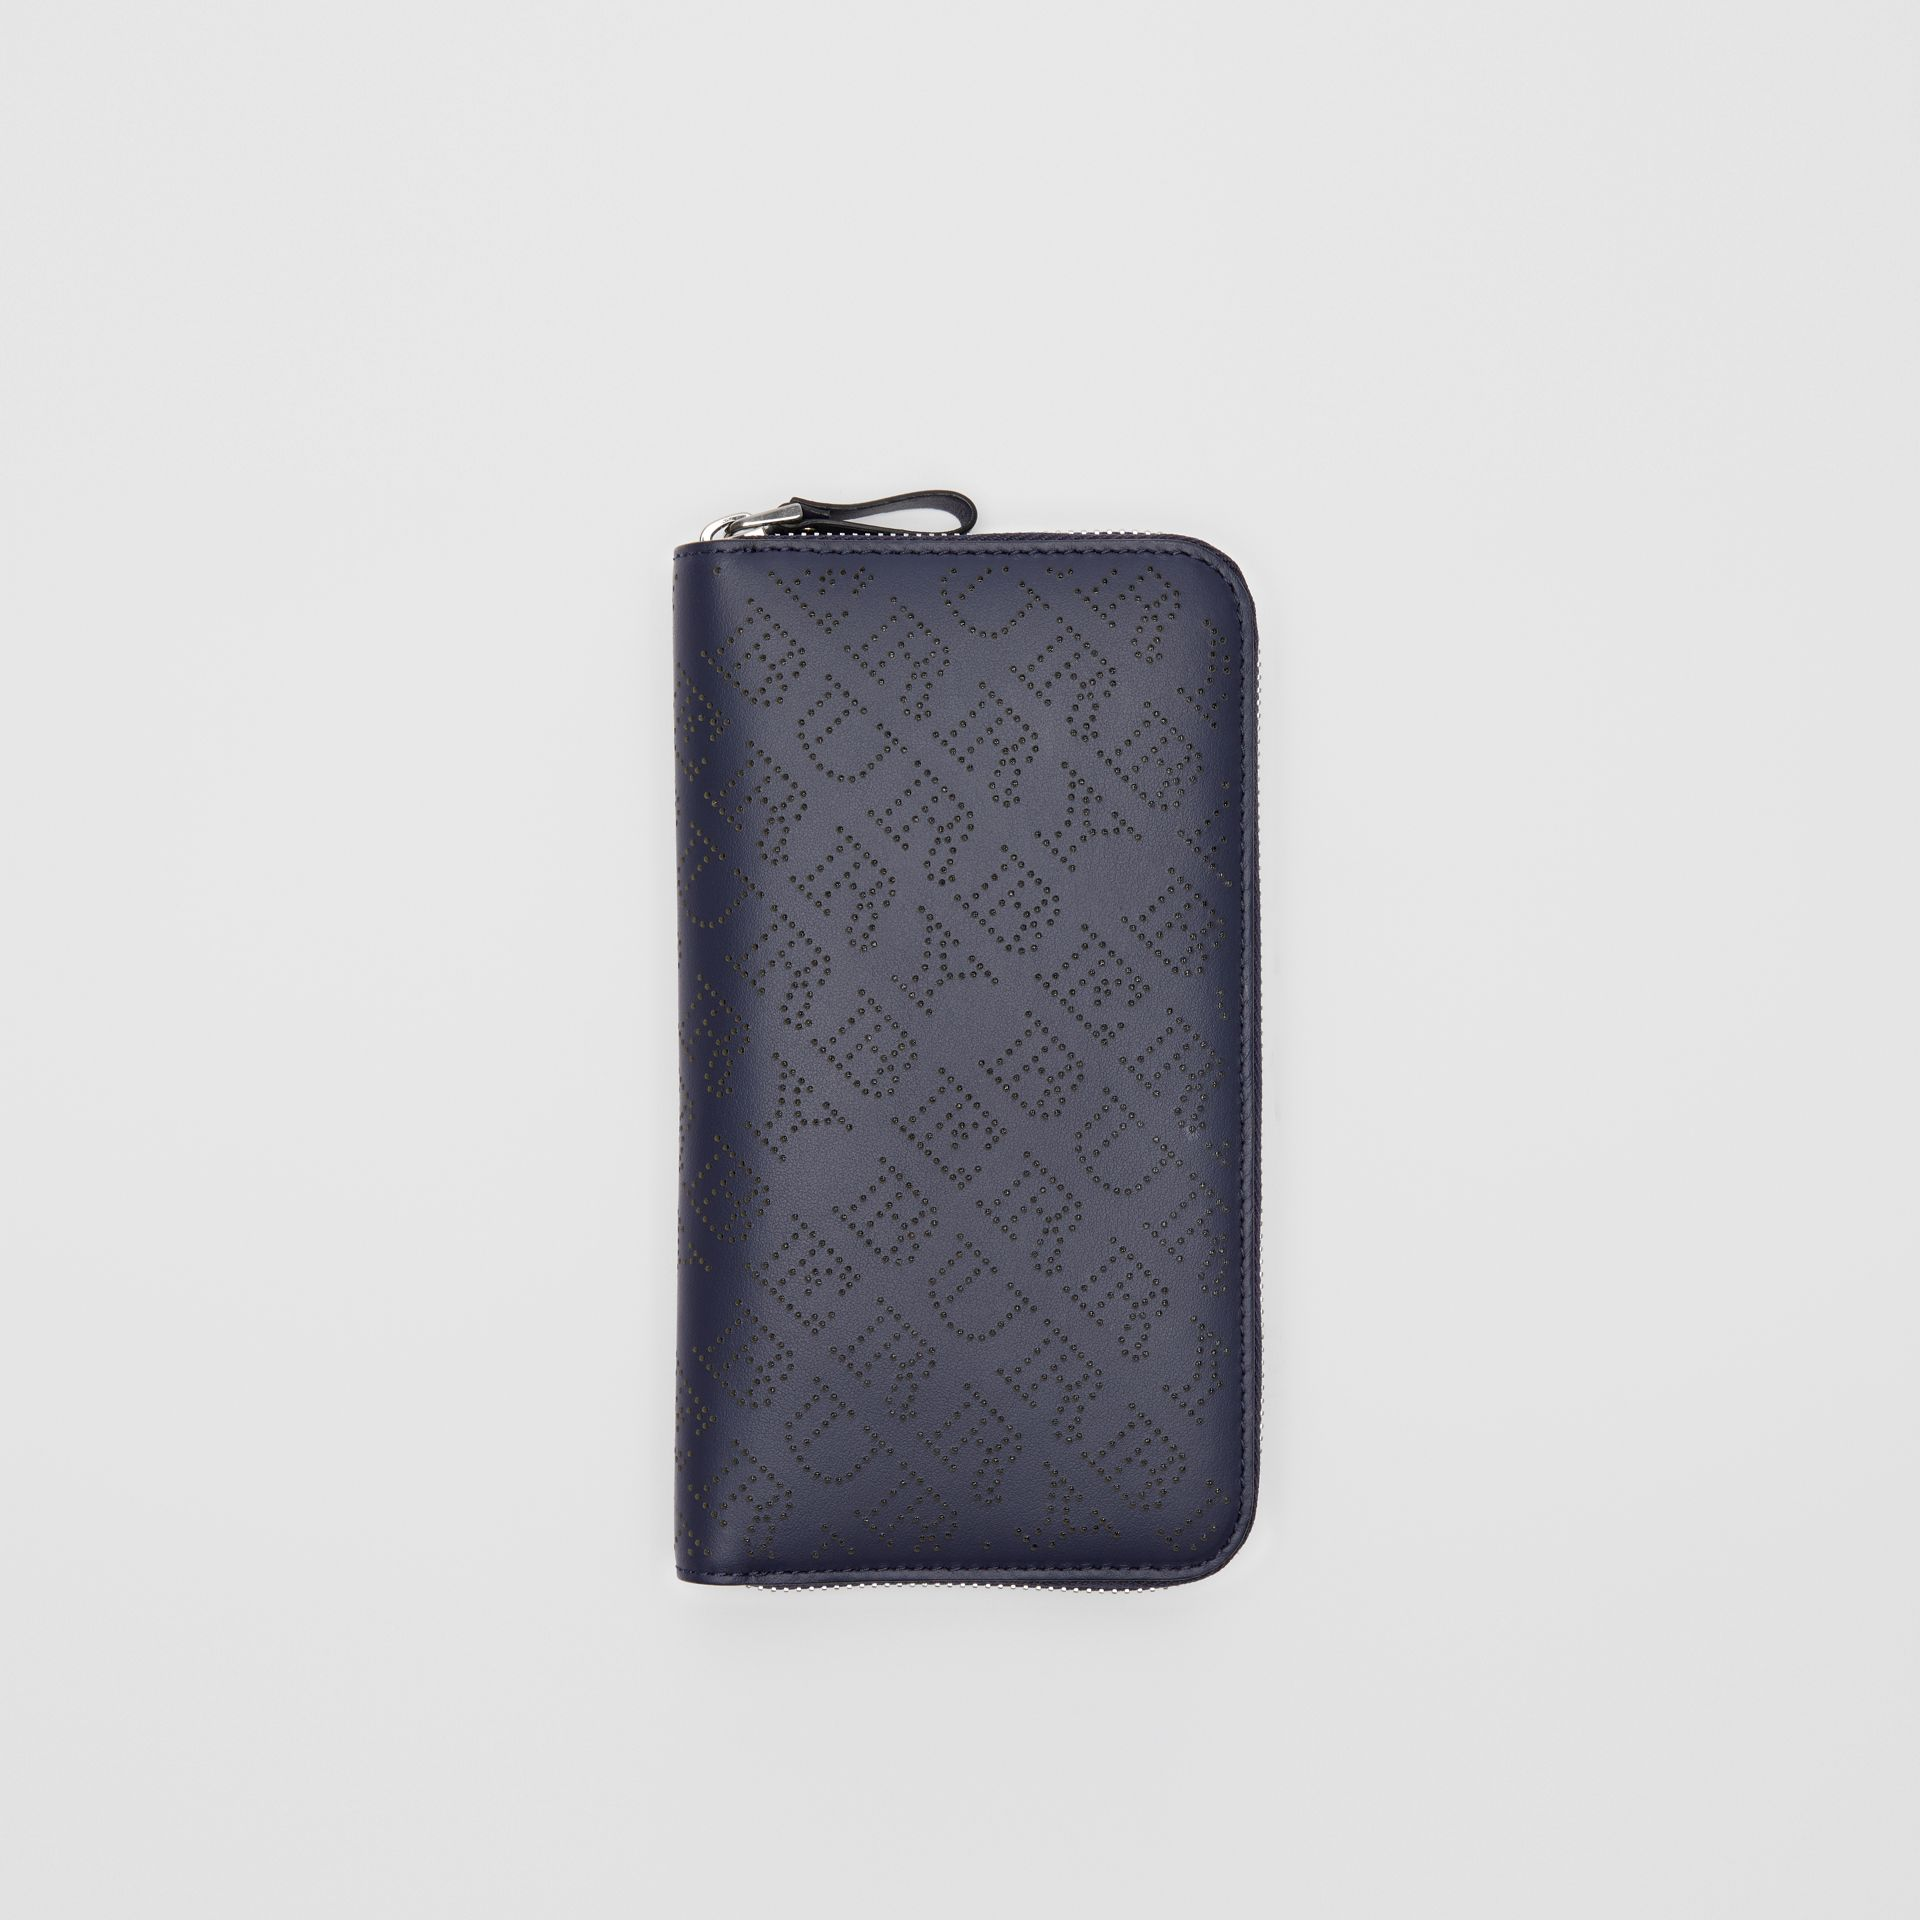 Perforated Leather Ziparound Wallet in Navy - Women | Burberry Australia - gallery image 0